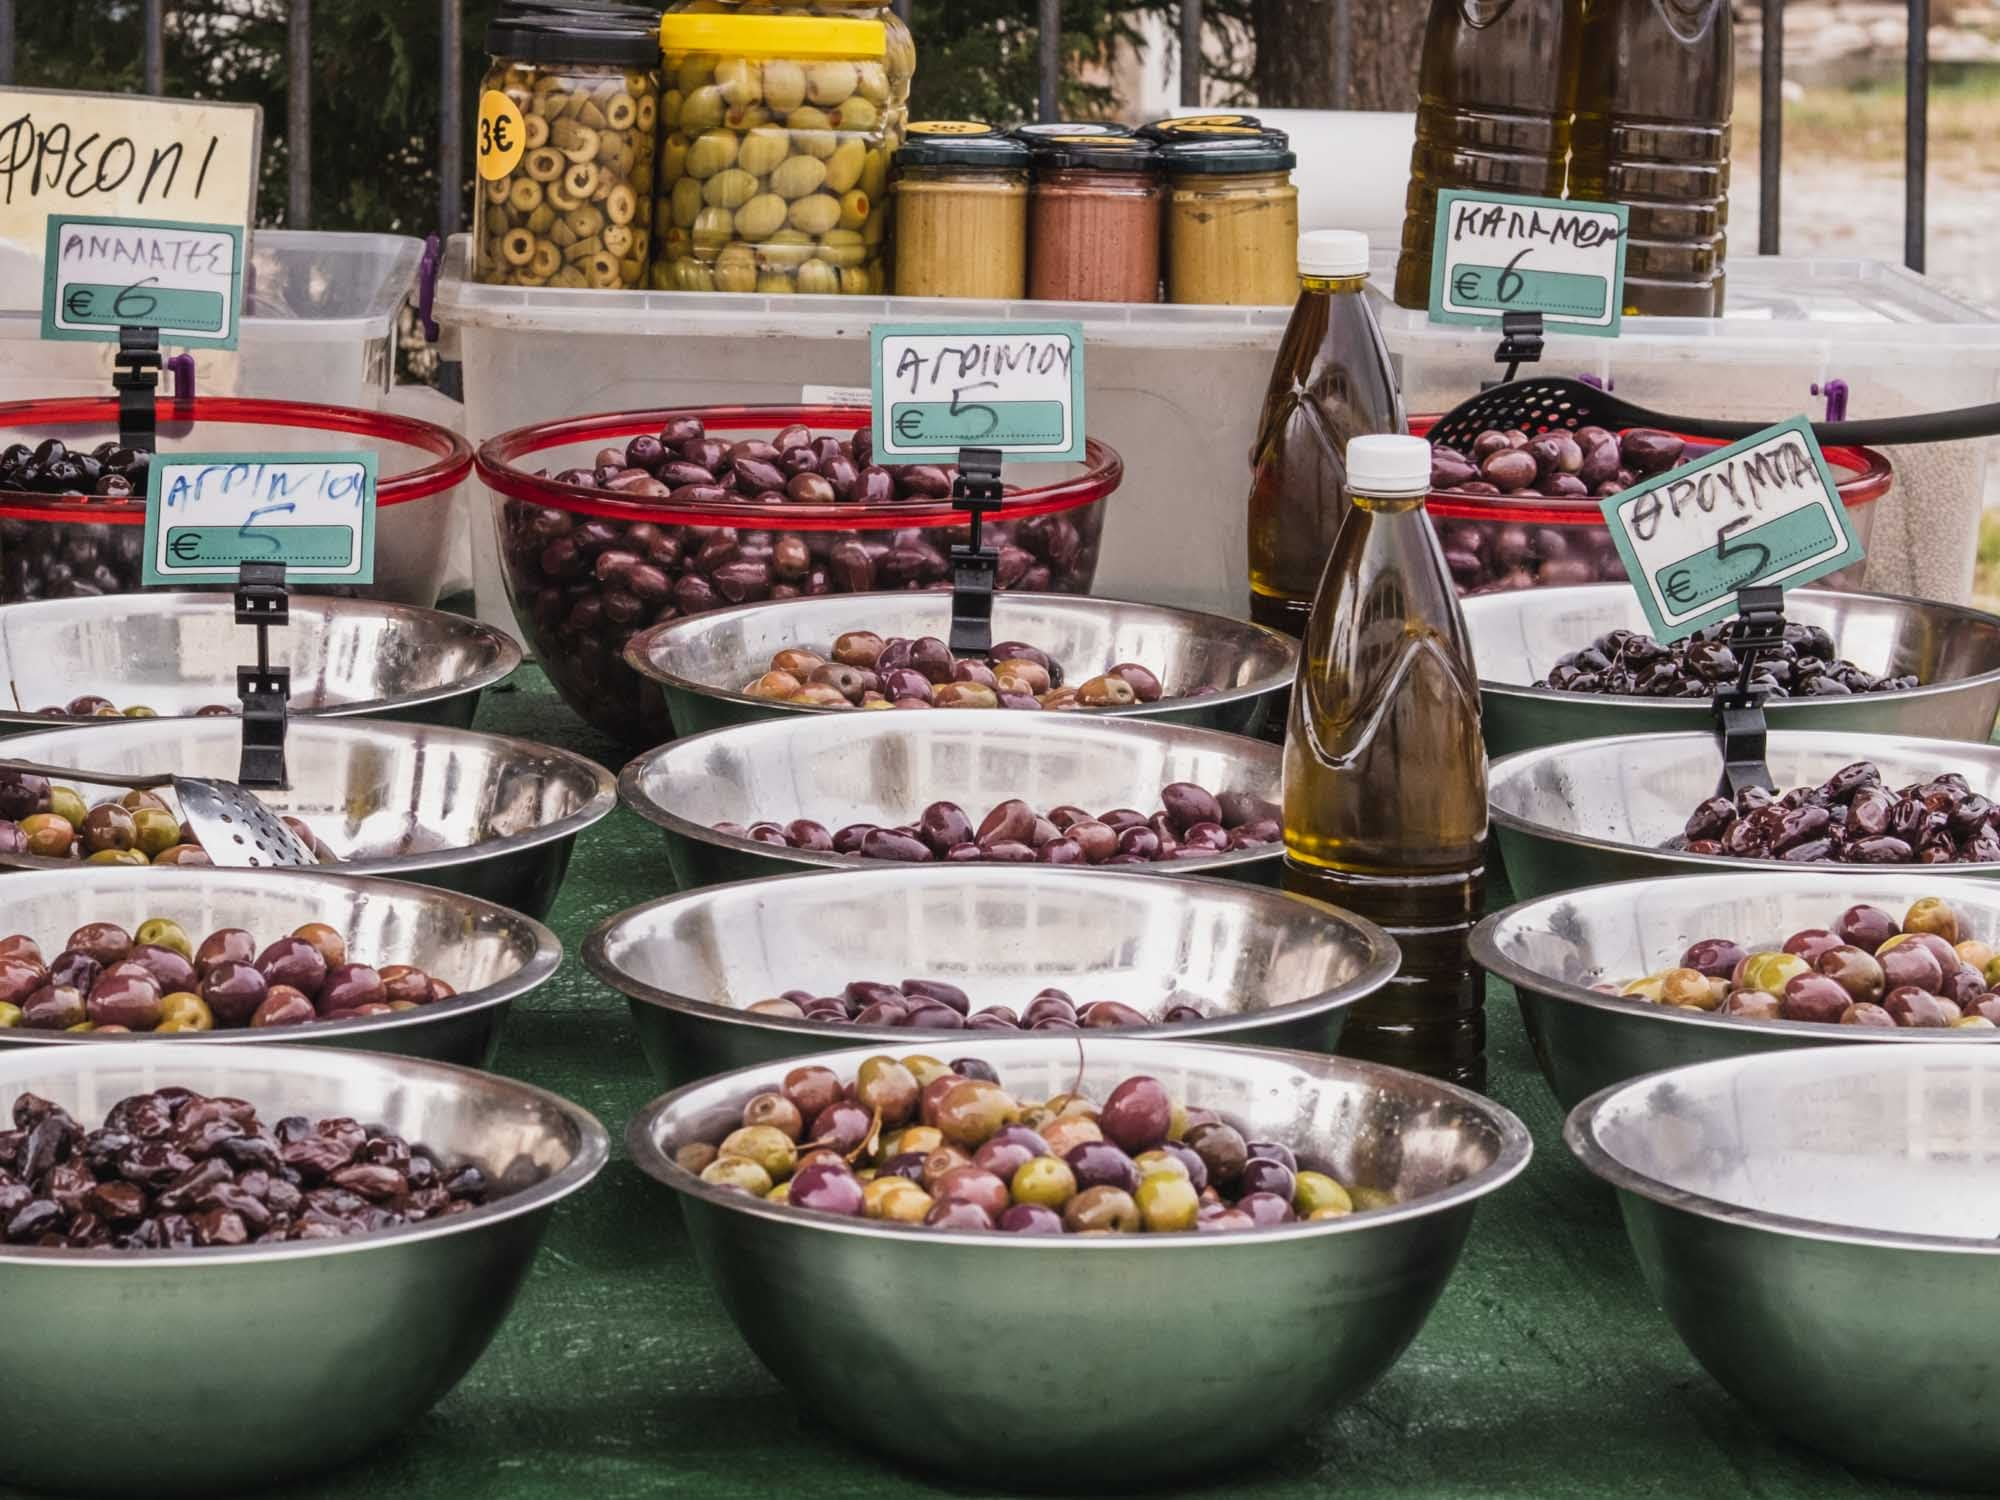 different types of olives at lefkada's outdoor street market